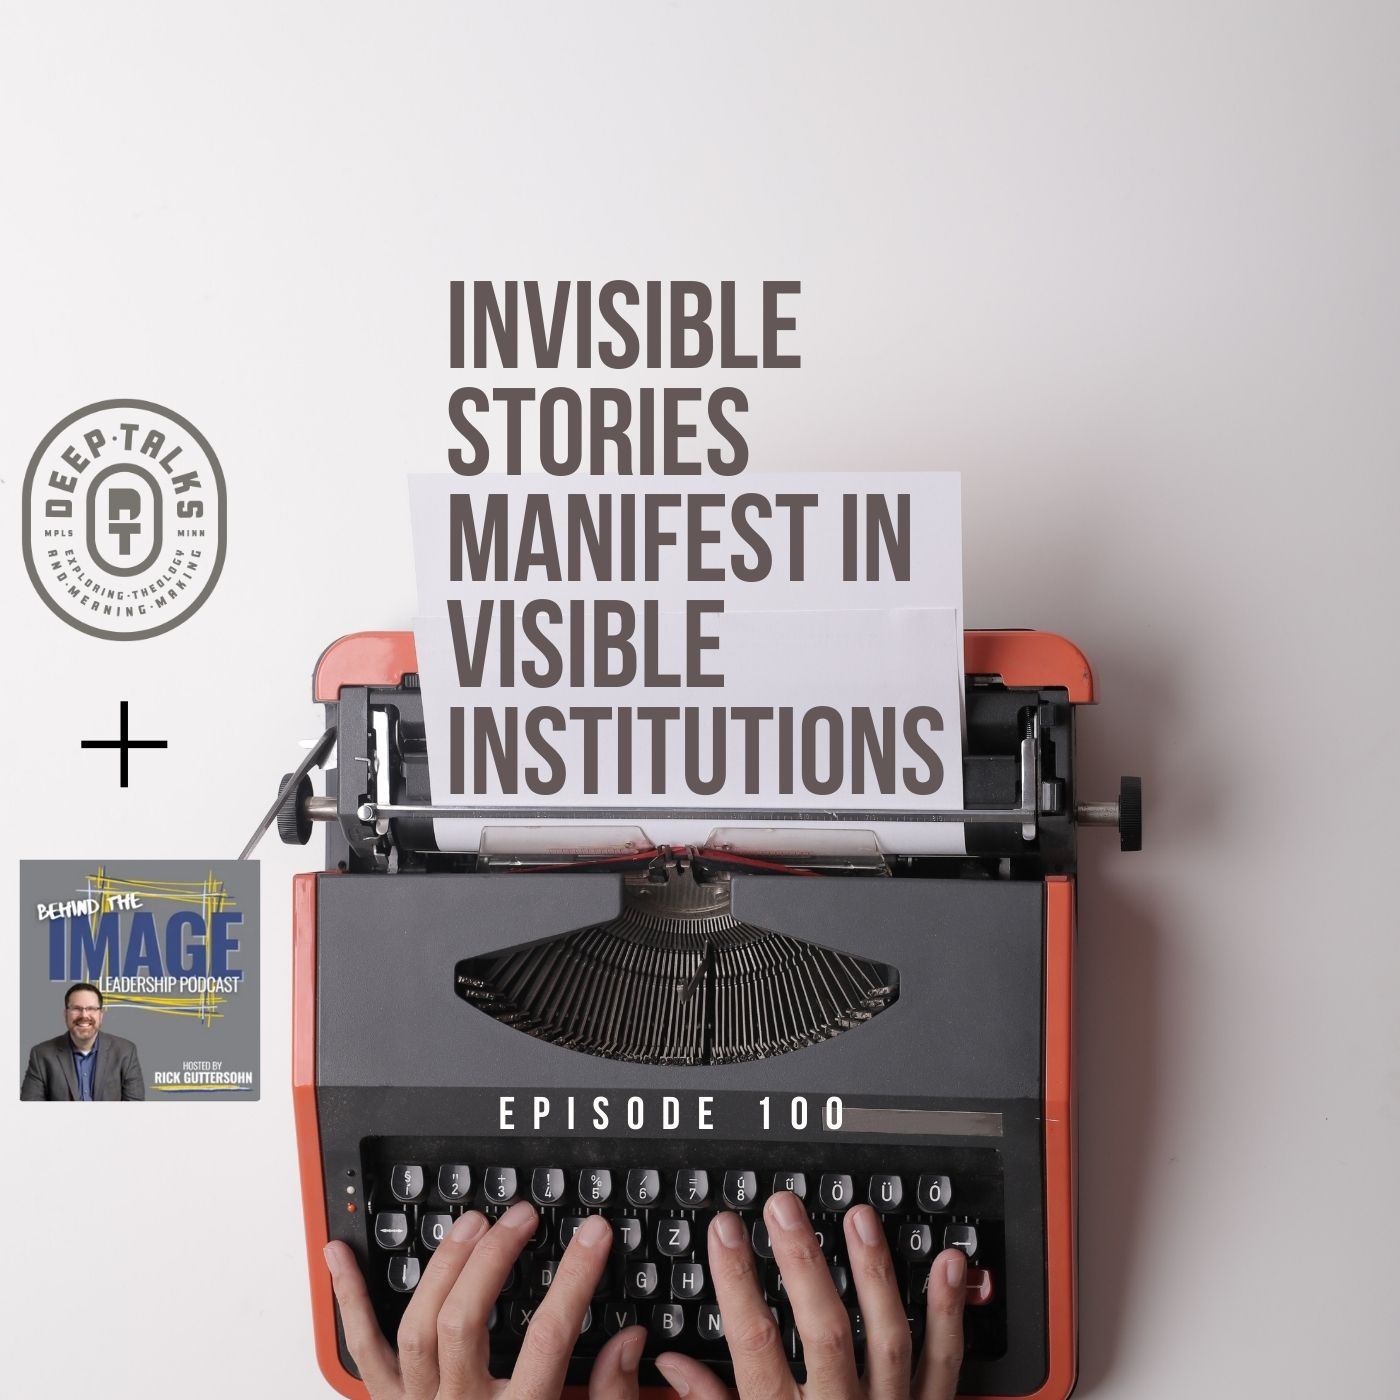 Ep 100: Invisible Stories Manifest in Visible Institutions (Behind the Image Leadership Podcast interview)